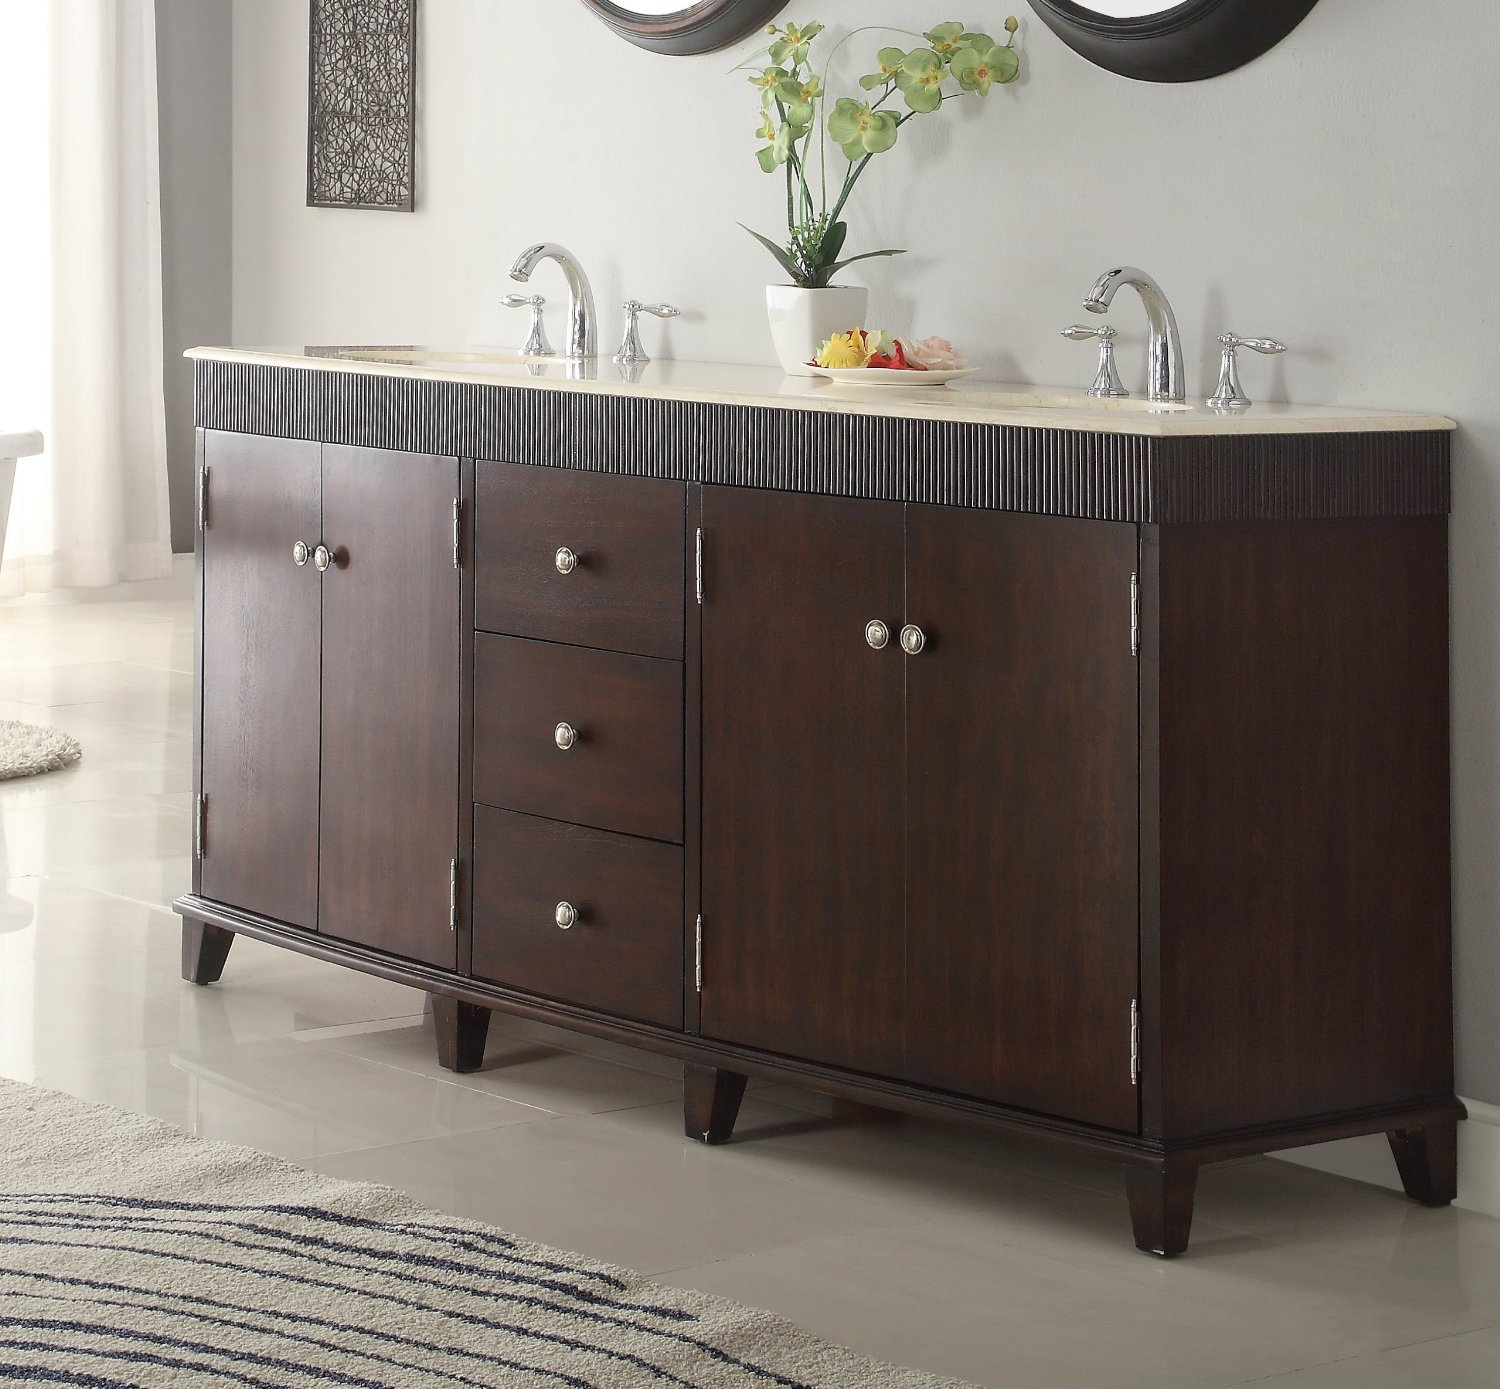 Bathroom Vanity 72 Double Sink Adelina 72 Inch Contemporary Double Sink Bathroom Vanity Cream